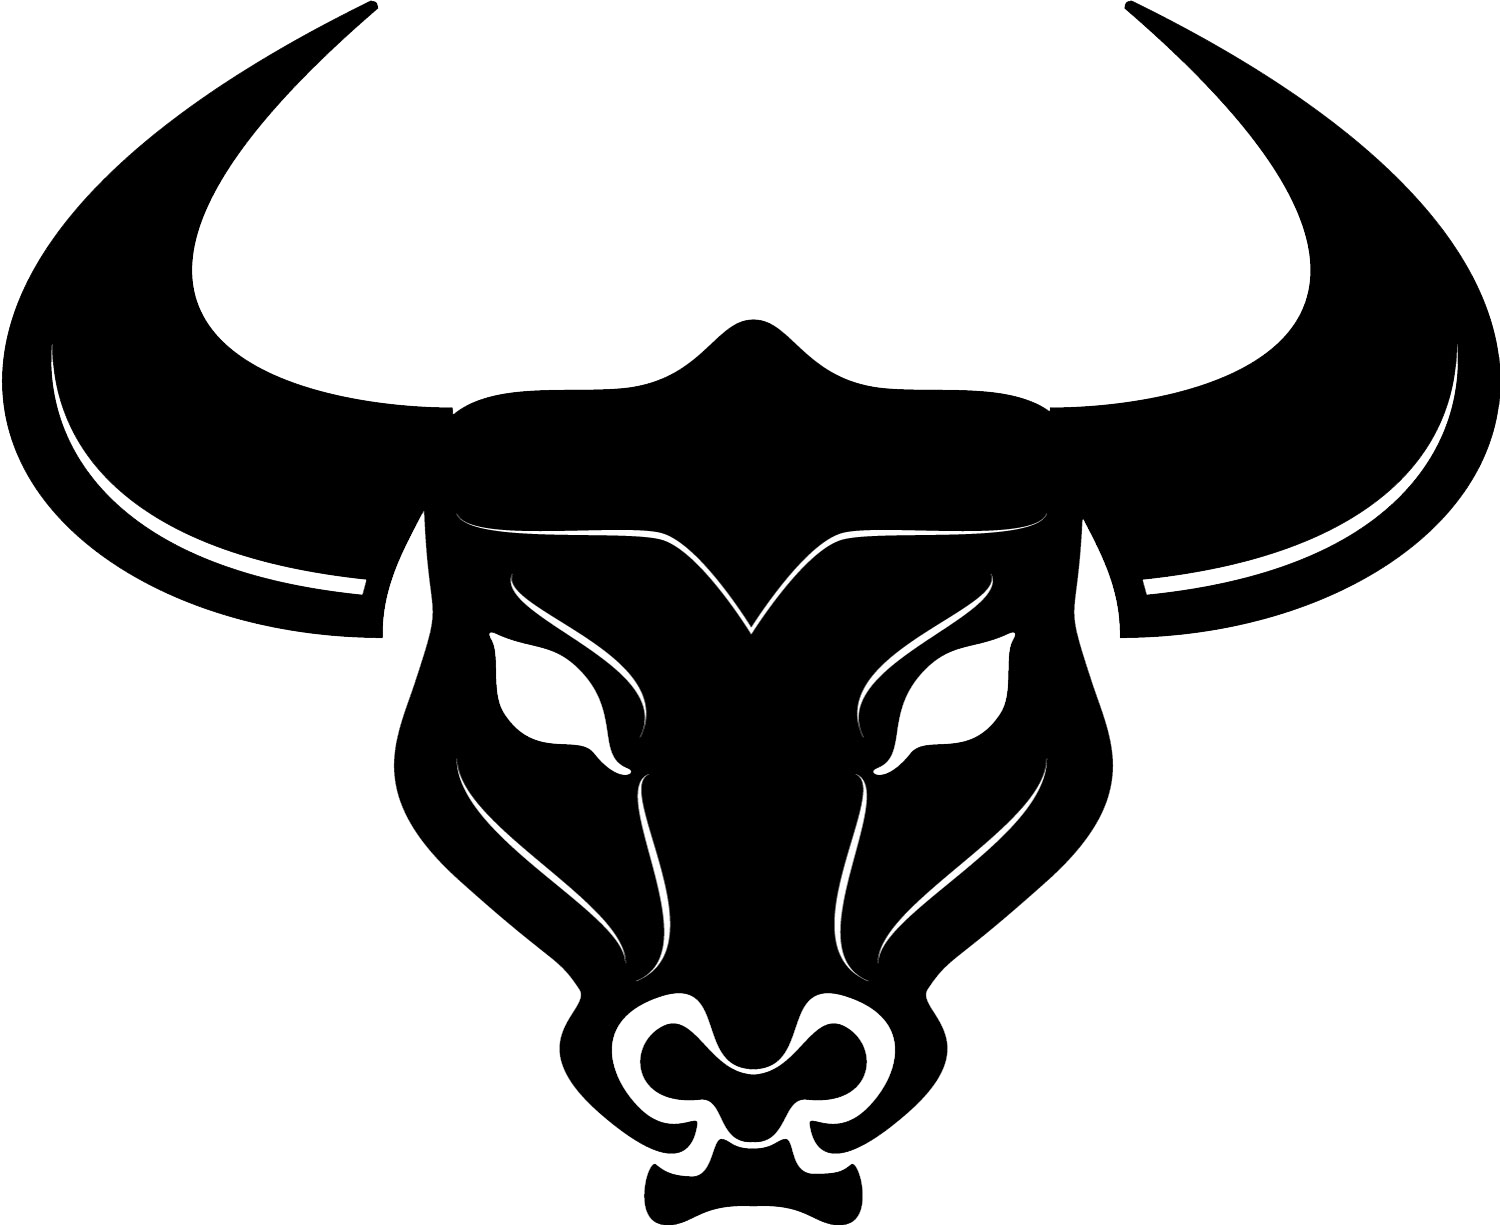 Bull head silhouette clipart vector royalty free download Cattle Bull Horn Clip art - ferret png download - 1500*1225 - Free ... vector royalty free download